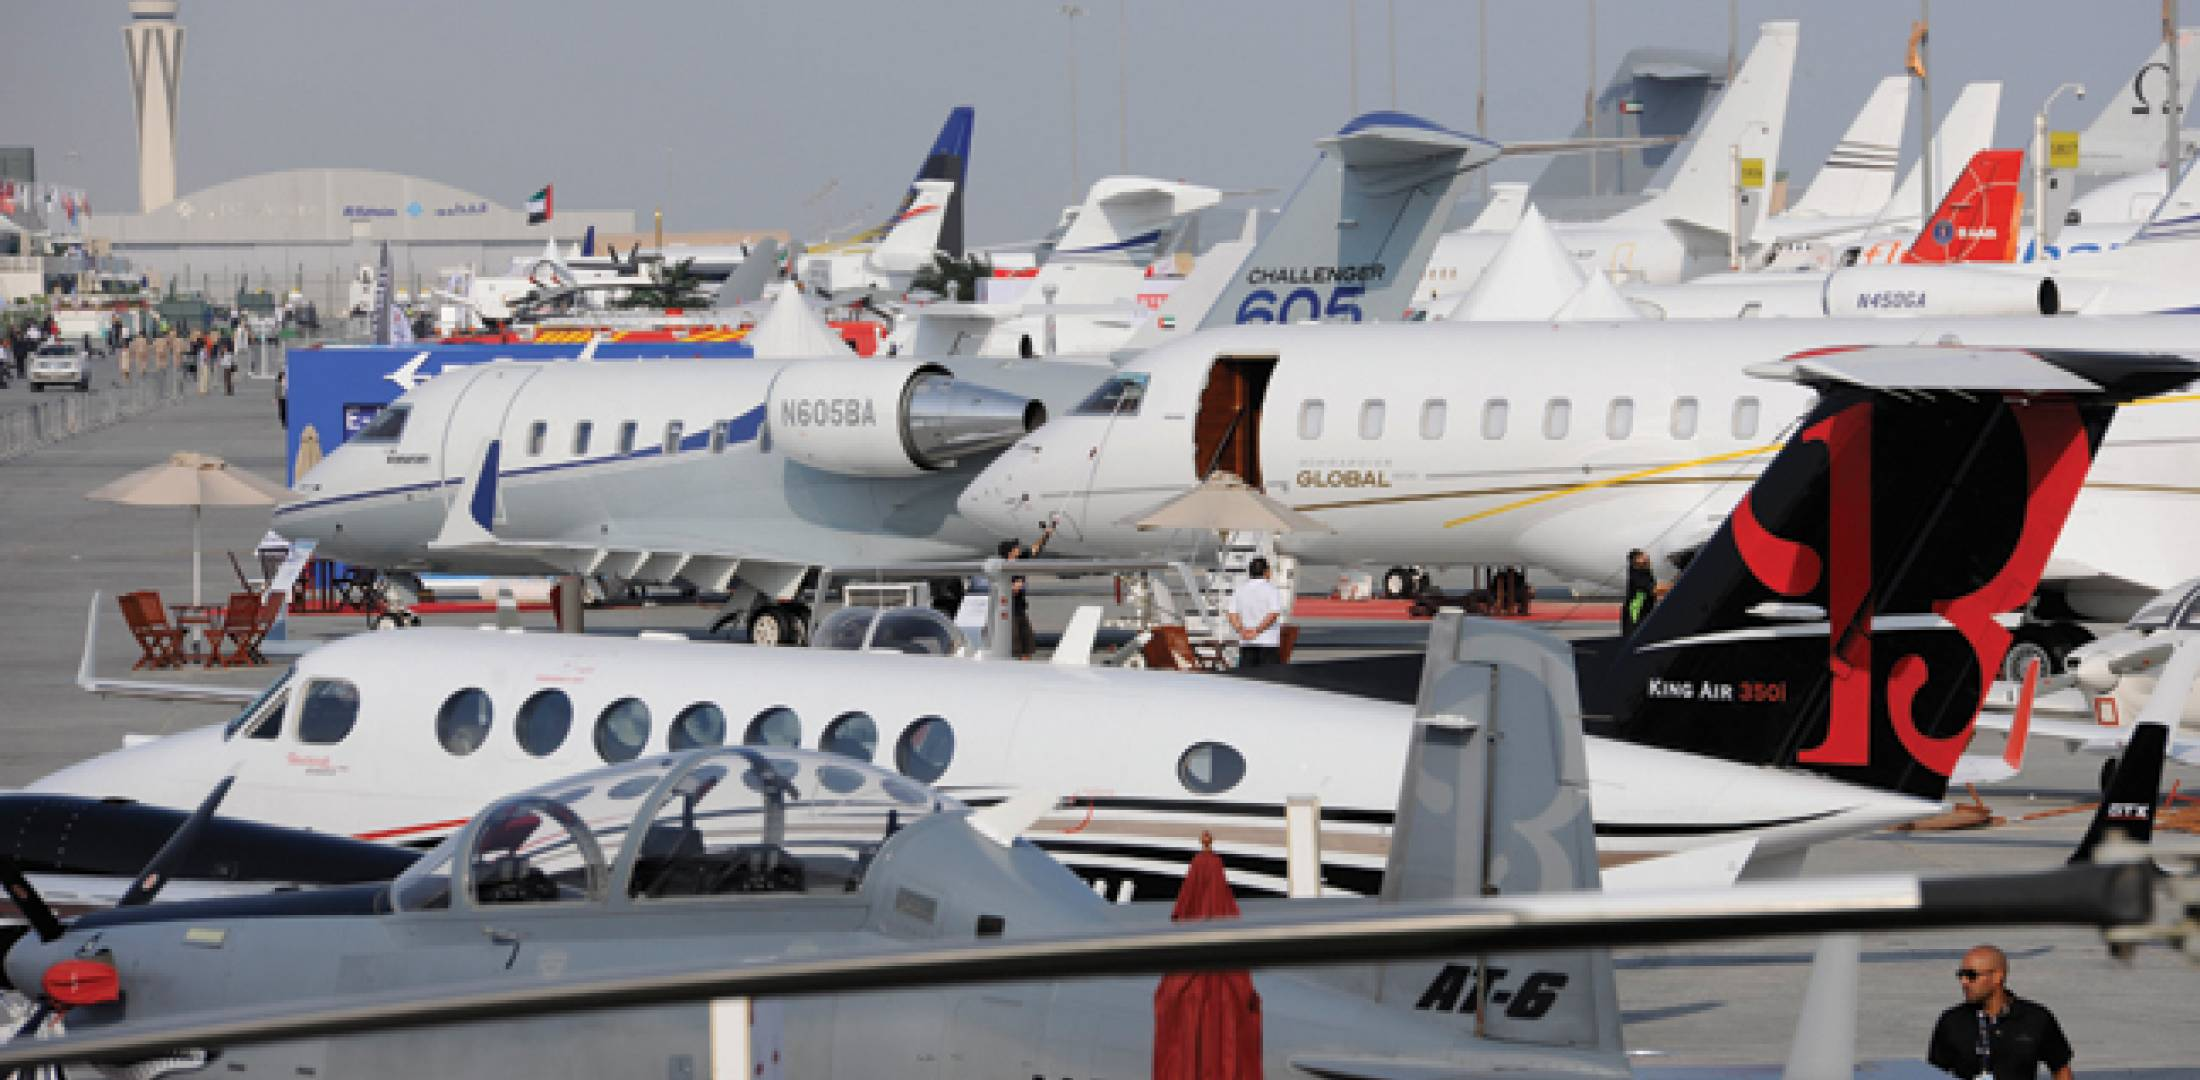 The biennial Dubai Airshow made the move from Dubai International Airport to the new Al Maktoum International Airport at Dubai World Central last year. The new purpose-built facility offered plenty of static display space. The DWC site offers exactly the sort of benefts business aviation looks for: no slot restrictions, giving operators the freedom they need, and proximity to town.